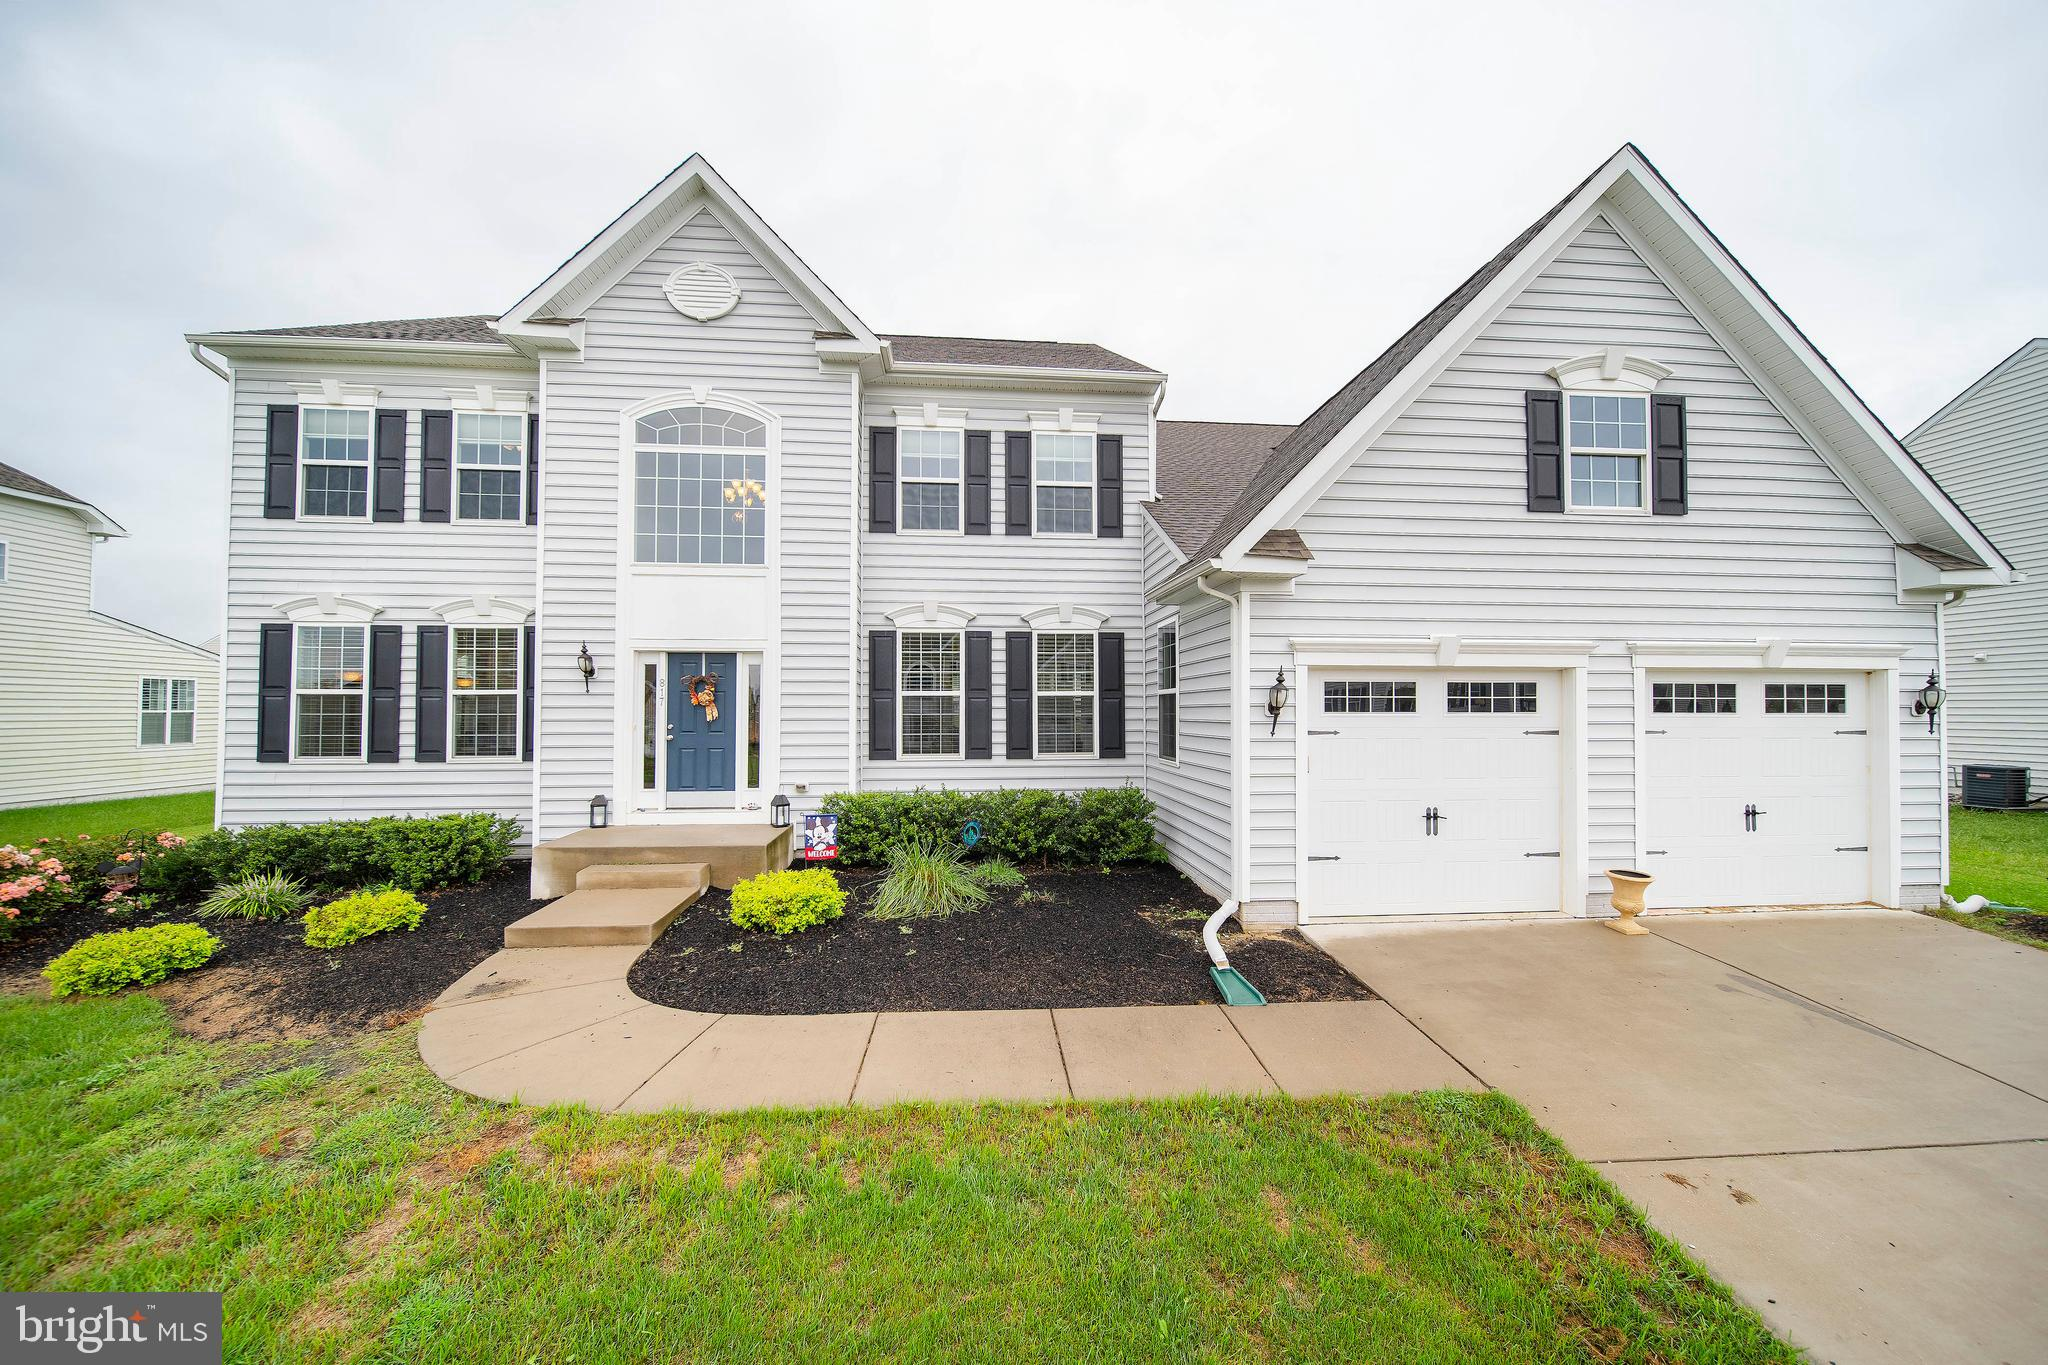 https://vimeo.com/457743089**** Why wait for new construction when you can be here! Close proximity to Route 1 in sought-after Ashby's Place.  This 4 bedroom, 6 full bath home has been well cared for and is like new! Gracious open concept floor plan welcomes you upon entry from the two-story foyer with espresso hardwood floors.  The entry foyer is flanked by formal living and/or office and dining room with wainscoting and stately columns.  The formal dining area flows seamlessly to generous family room and open kitchen.  The centerpiece of the family room is a gas fireplace.  The ample windows on the rear elevation allow for plenty of natural light and peaceful view of the pond. Gourmet kitchen with large center island, granite countertops, stainless steel GE Profile appliances and 42-inch cabinets.  Eat-in kitchen comfortably holds kitchen table.  Mudroom entrance from the garage with pantry leads to separate laundry room.  Office with full bath complete the first floor.   The second floor hosts luxurious Owner's suite with sitting area,  large soaking tub, his & her vanities with granite, and tile surround shower.  The other 3 generously sized bedrooms on this floor are all ensuite bathrooms.   Large finished basement with areas for TV entertainment, pool and other games complete with full bath.  Plenty of storage in unfinished areas of the basement.  Oversized two-car garage.   You won't want to miss this luxury estate home with many upgrades: schedule your tour today!